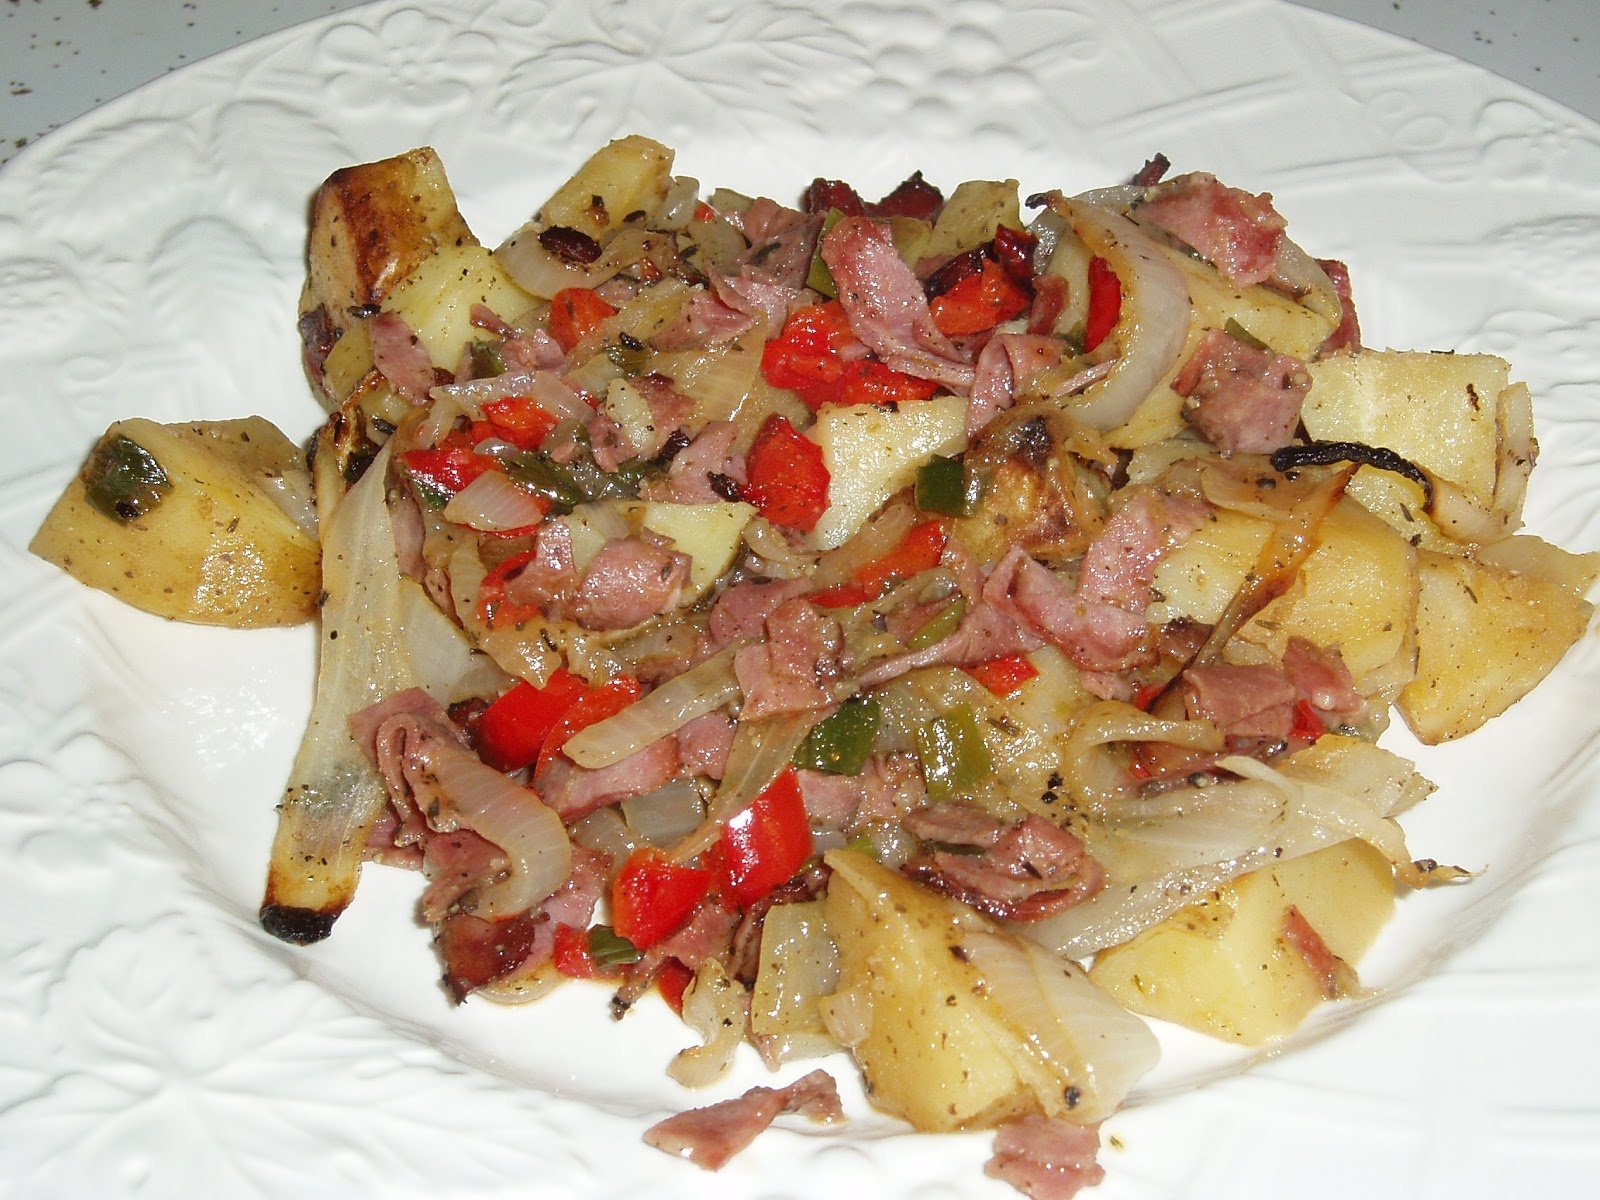 What's for Dinner?: Pastrami Hash or What Is It?